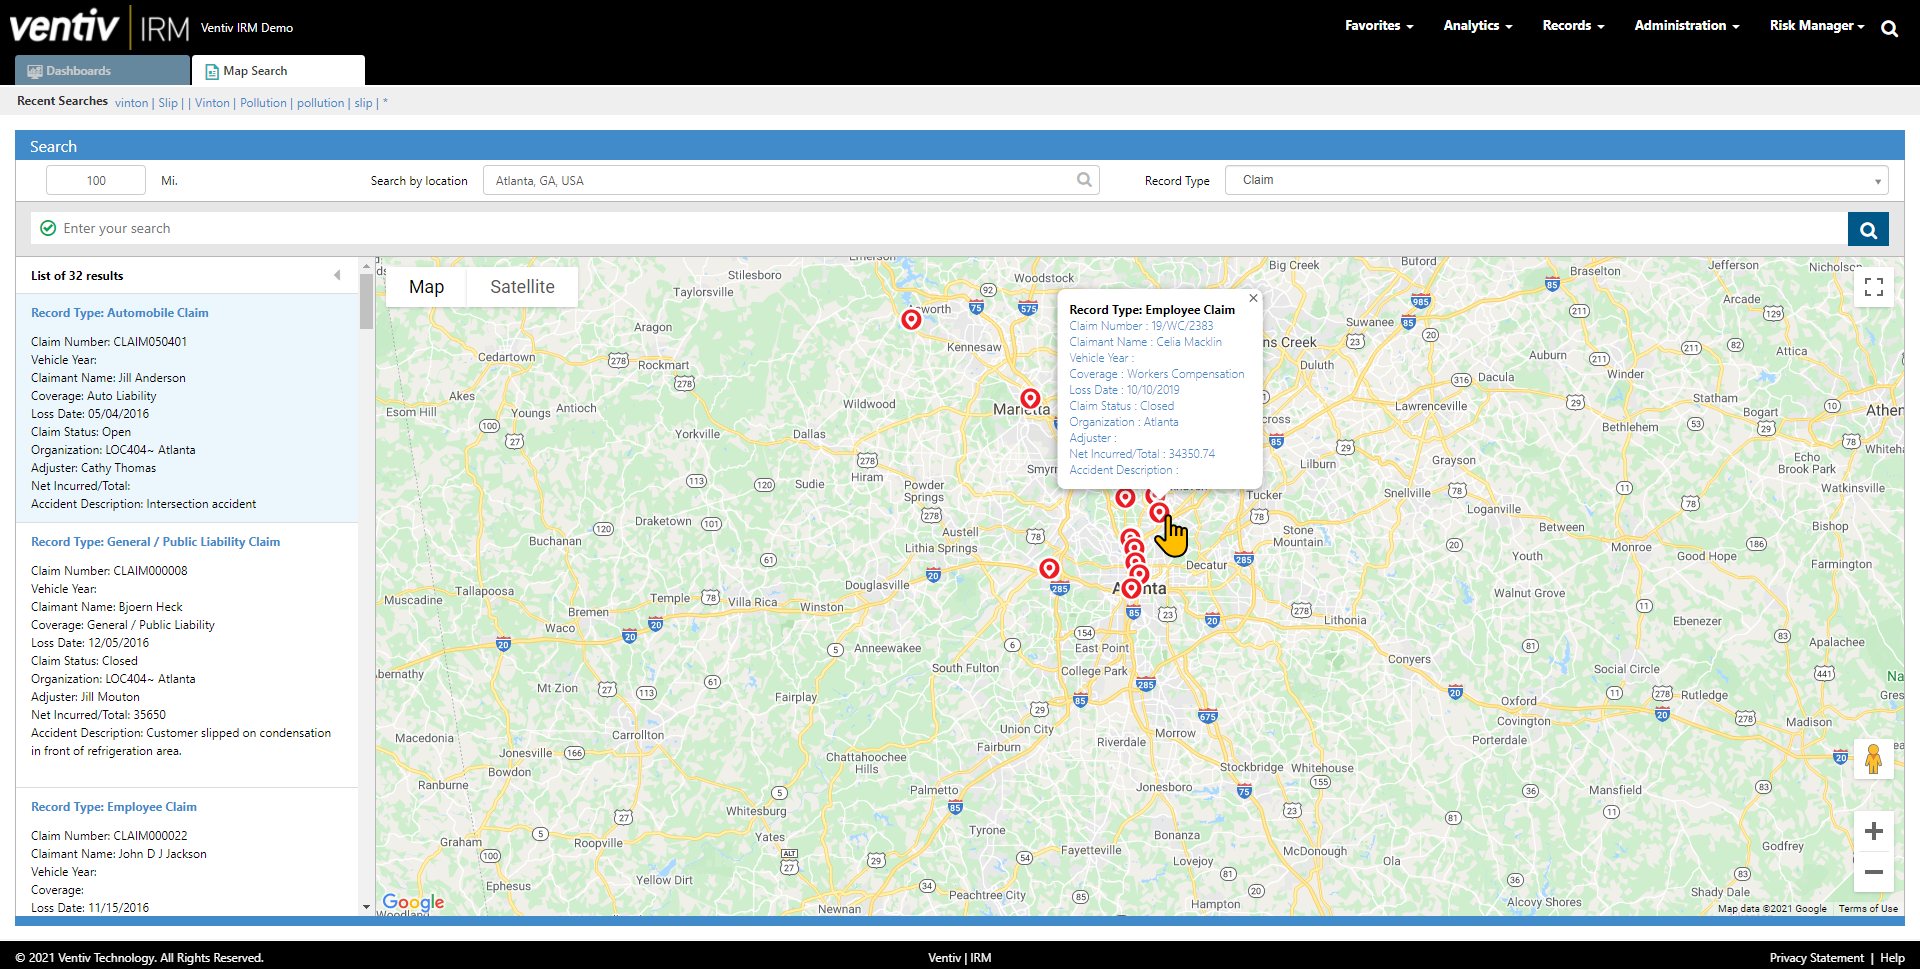 Map Search allows you look for information geographically to spot locations and concentrations. Connect to our advanced analytics to see how your risk profile is impacted by geographic hazards and perils.